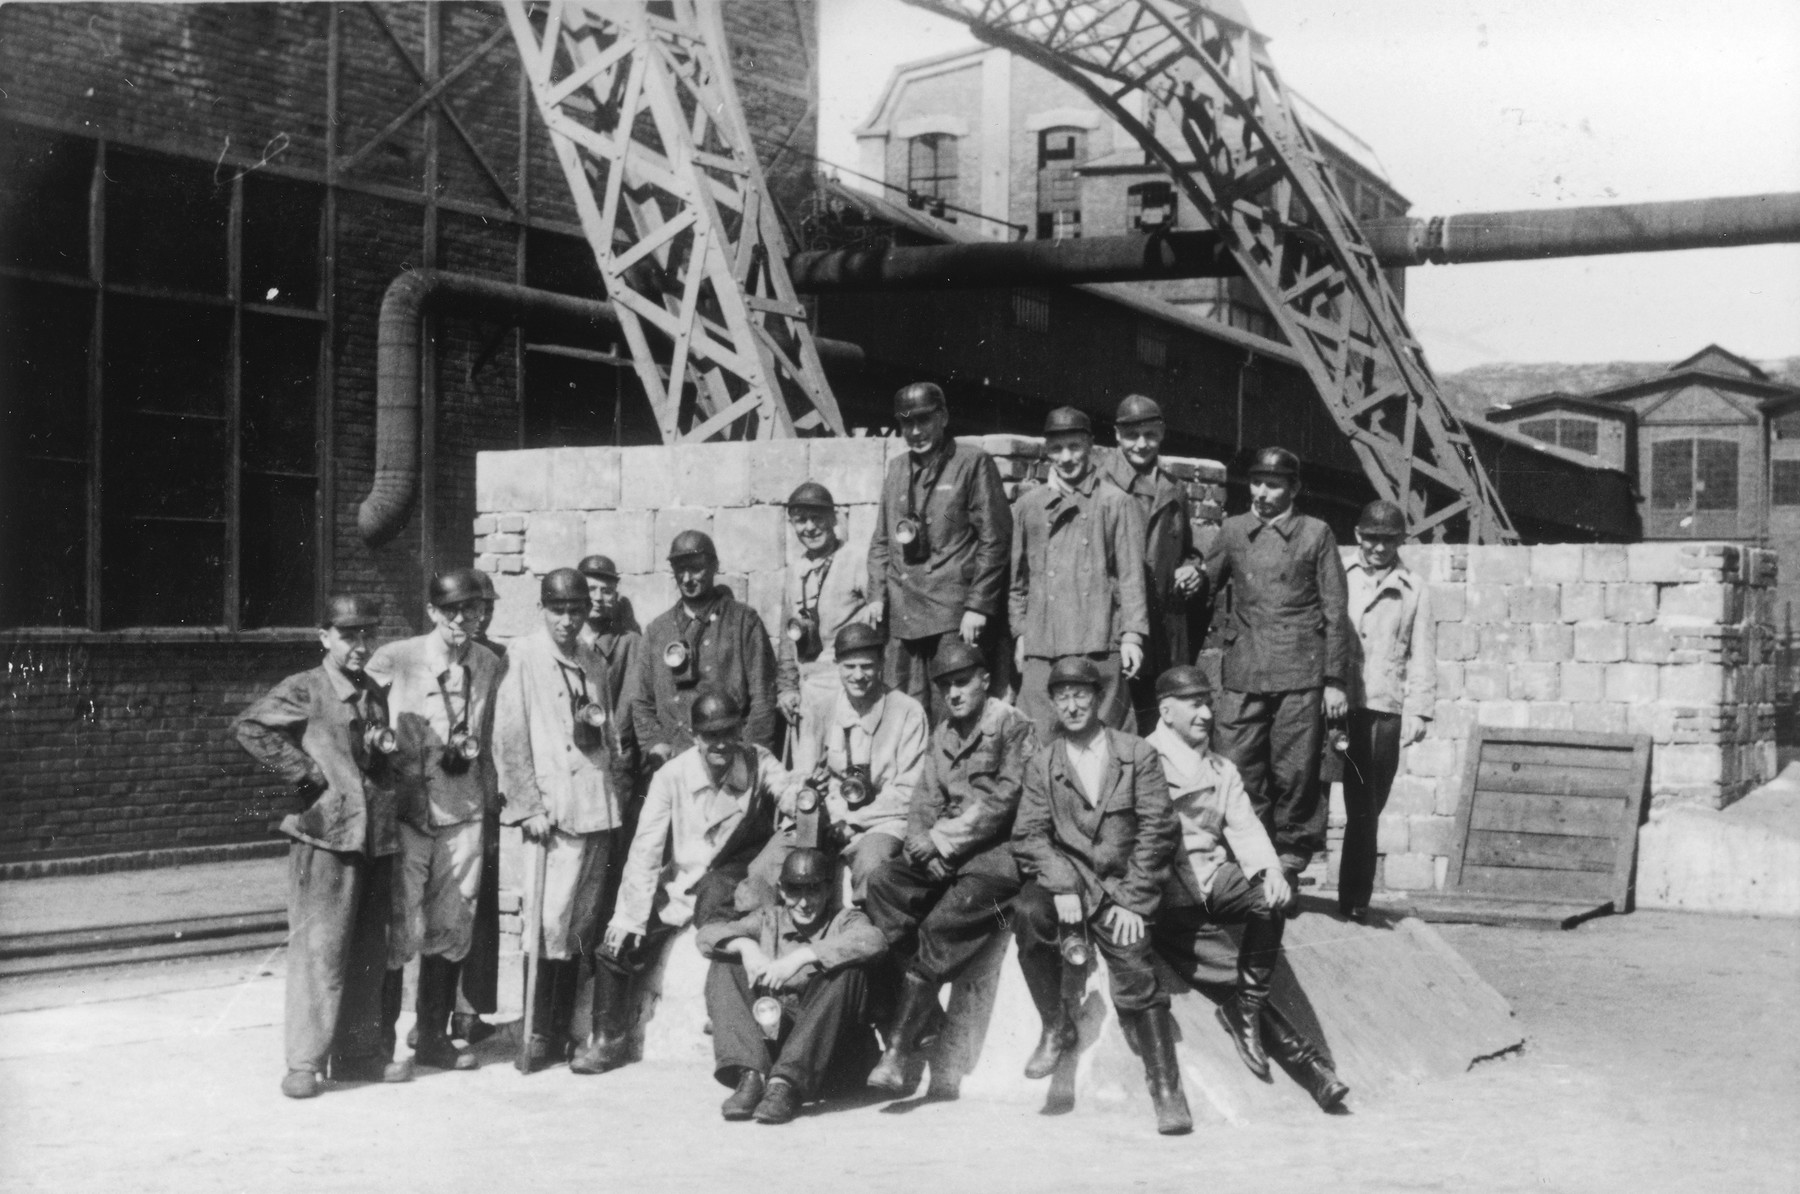 """A large group of SS medical personnel visit a coal mine near Auschwitz following the dedication of the SS Lazerette.  The original caption reads """"Besichtigung eines Kohlenbergwerks."""" (visiting a coal mine).  Seated in the front center is Gerhard Gerber.  Seated behind him (left to right) are Waldemar Wolter, possibly Weber, Alfred Trzebinski, Richard Trommer, and Fritz Klein.  Standing left to right are Willy Frank, unidentified, Wilhelm Witteler, unidentified, Max Blancke, Karl Hoecker, Enno Lolling, Eduard Wirths, Heinz Baumkoetter and Sohatz."""